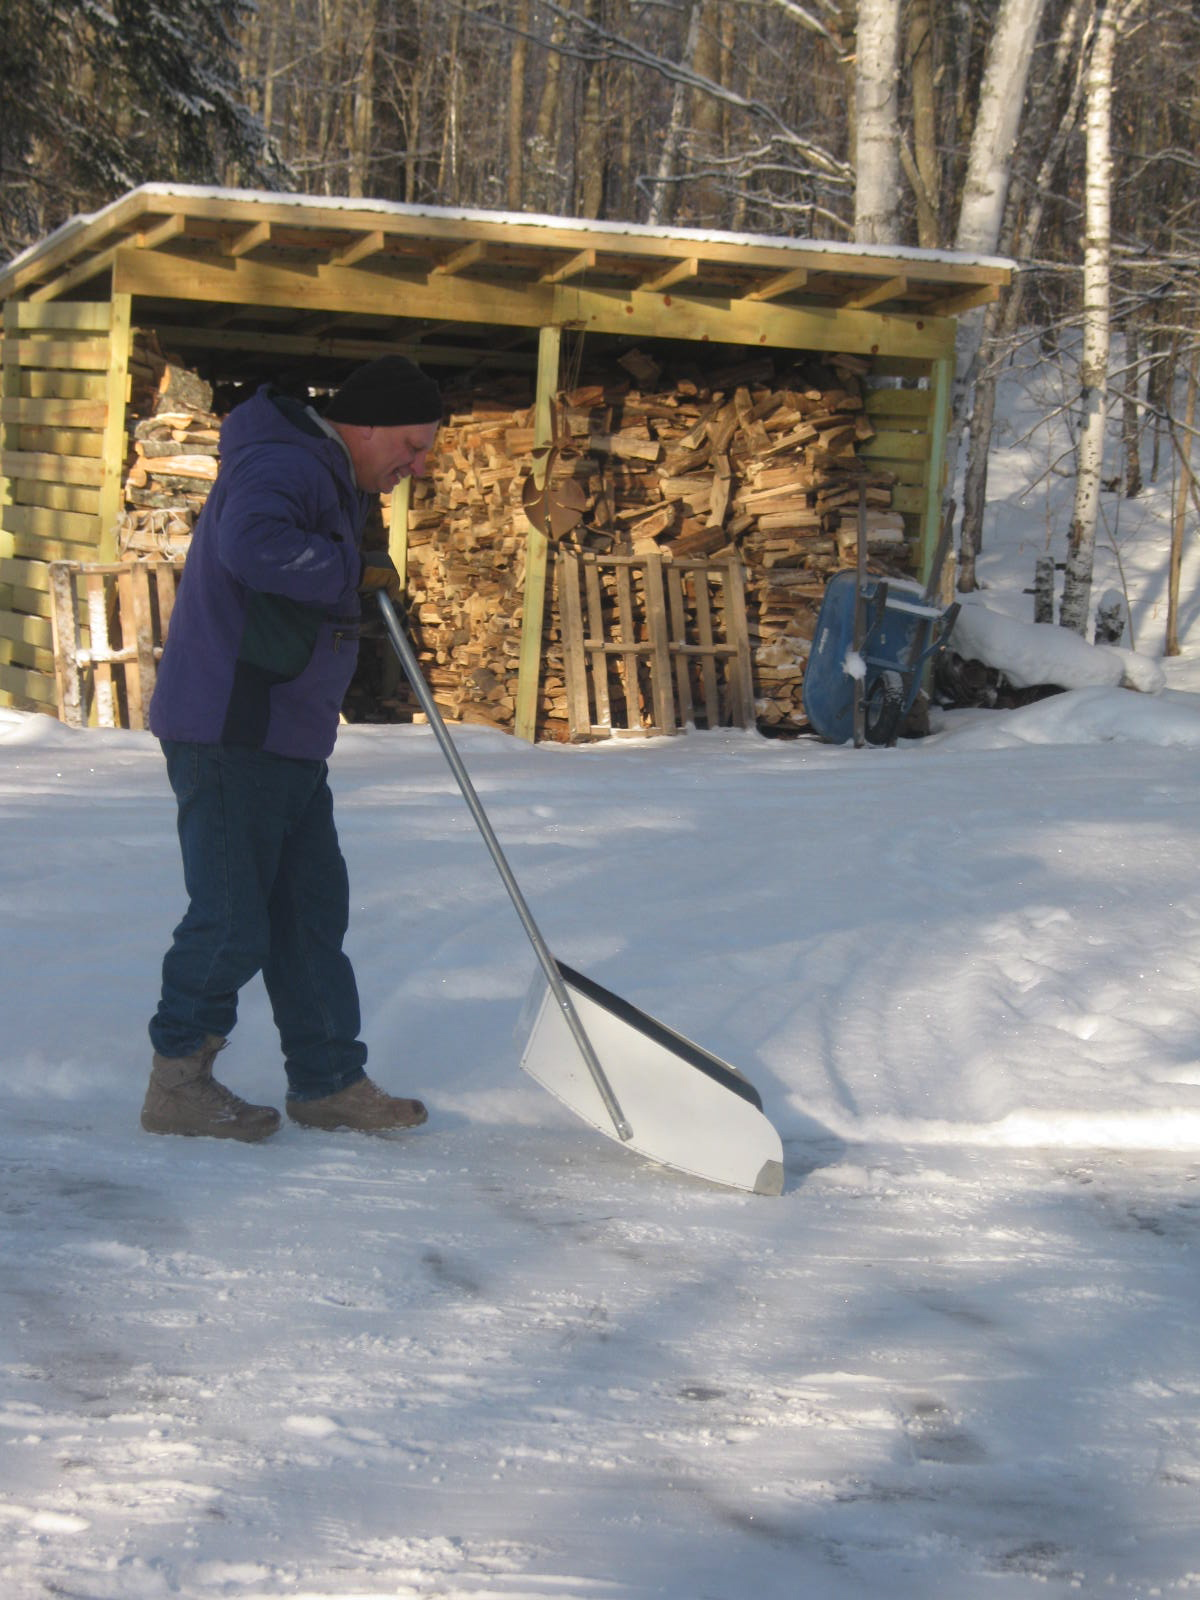 How To Remove Paint From Metal >> Simply Living in the Northwoods: Yoo-hoo, Yahoo! We Have a Yooper Scooper.